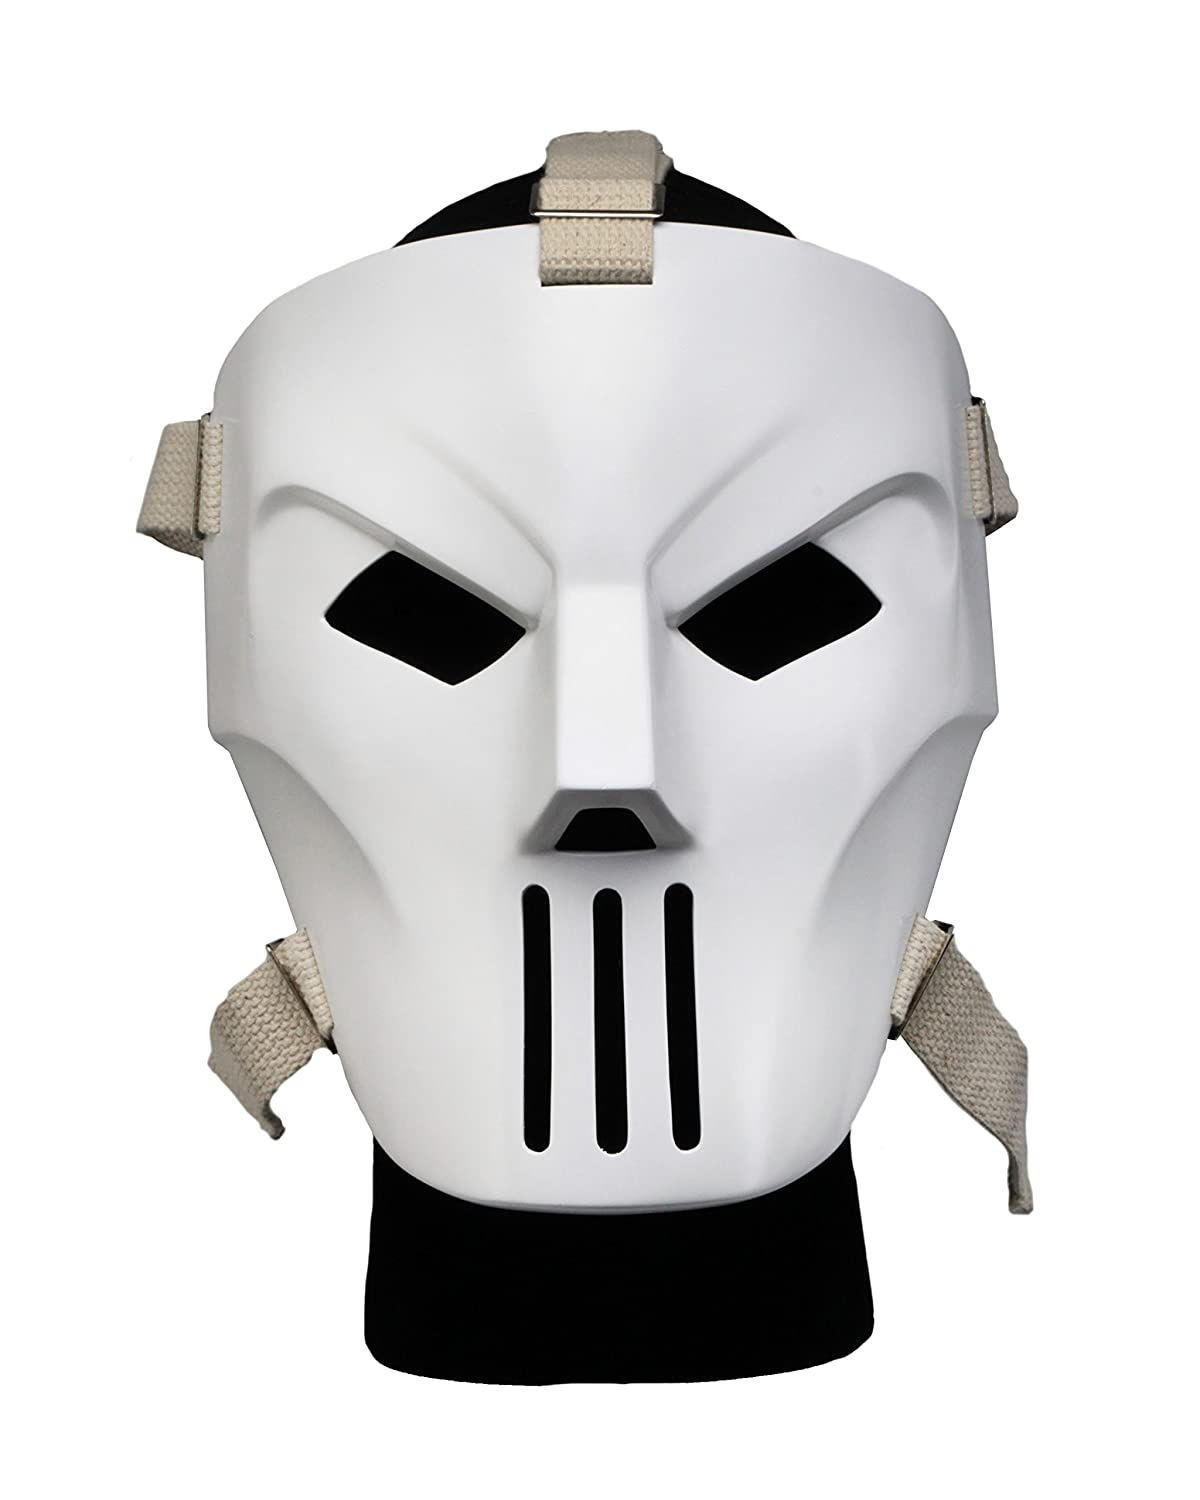 NECA - TMNT (1990 Movie) Prop Replica - Casey Jones Mask